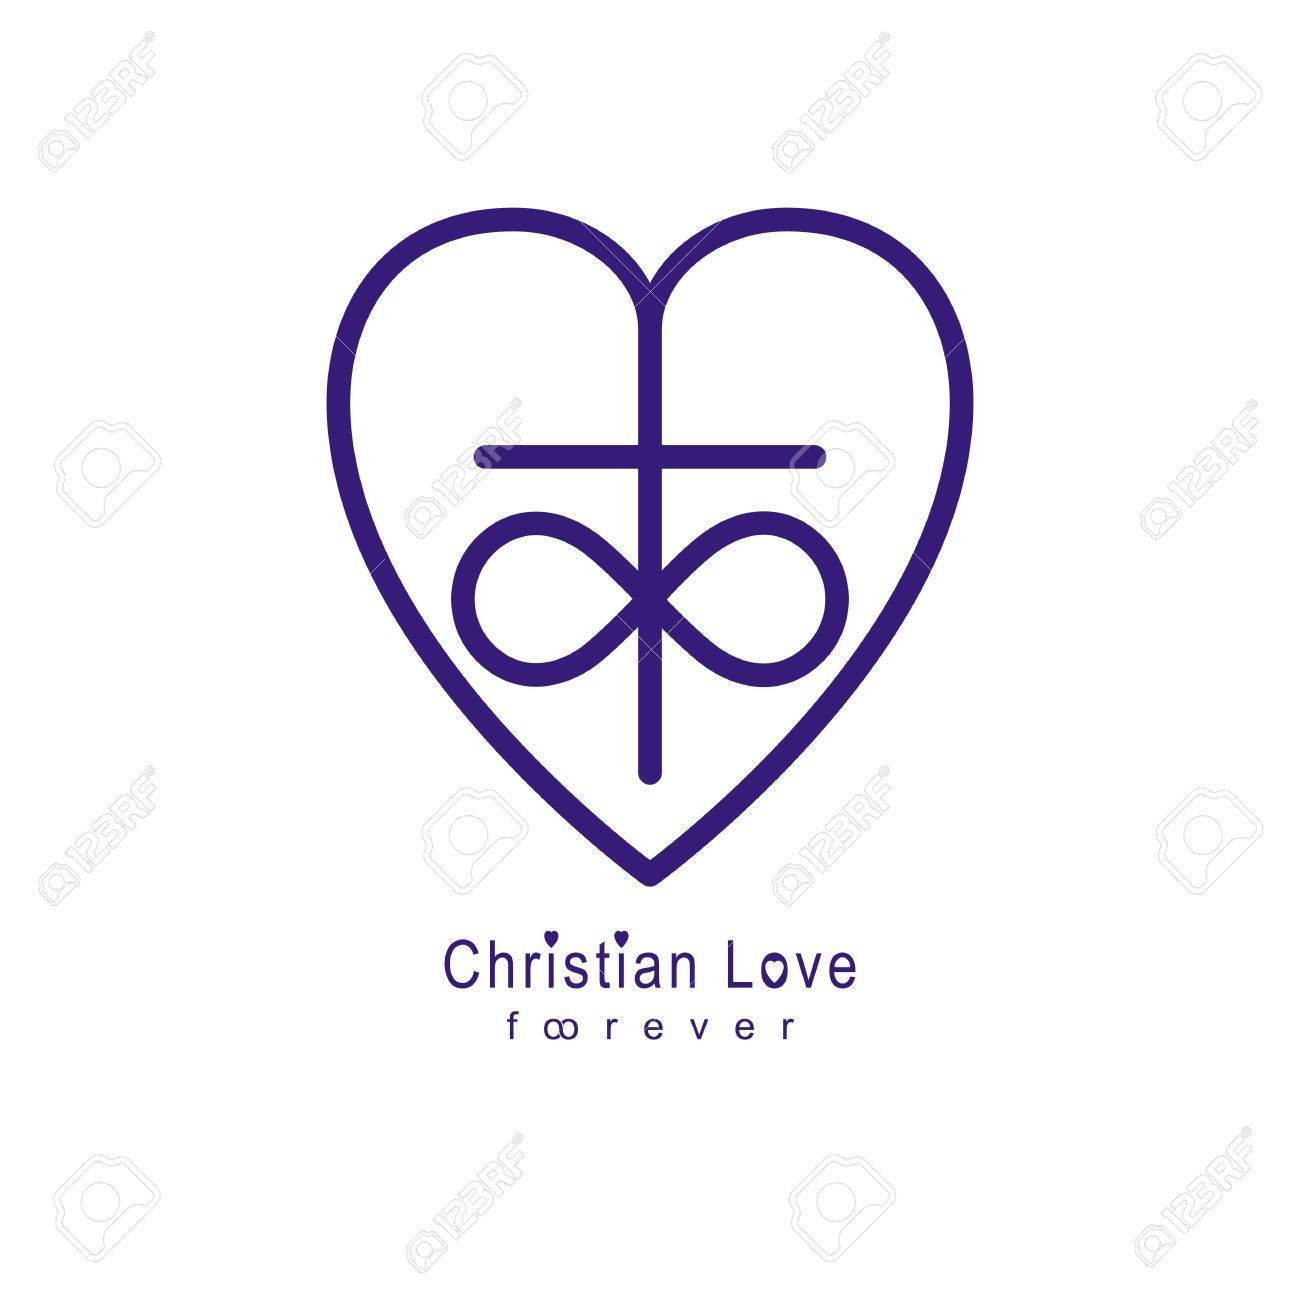 Symbol for eternity love images symbol and sign ideas everlasting love of god vector creative symbol design combined everlasting love of god vector creative symbol biocorpaavc